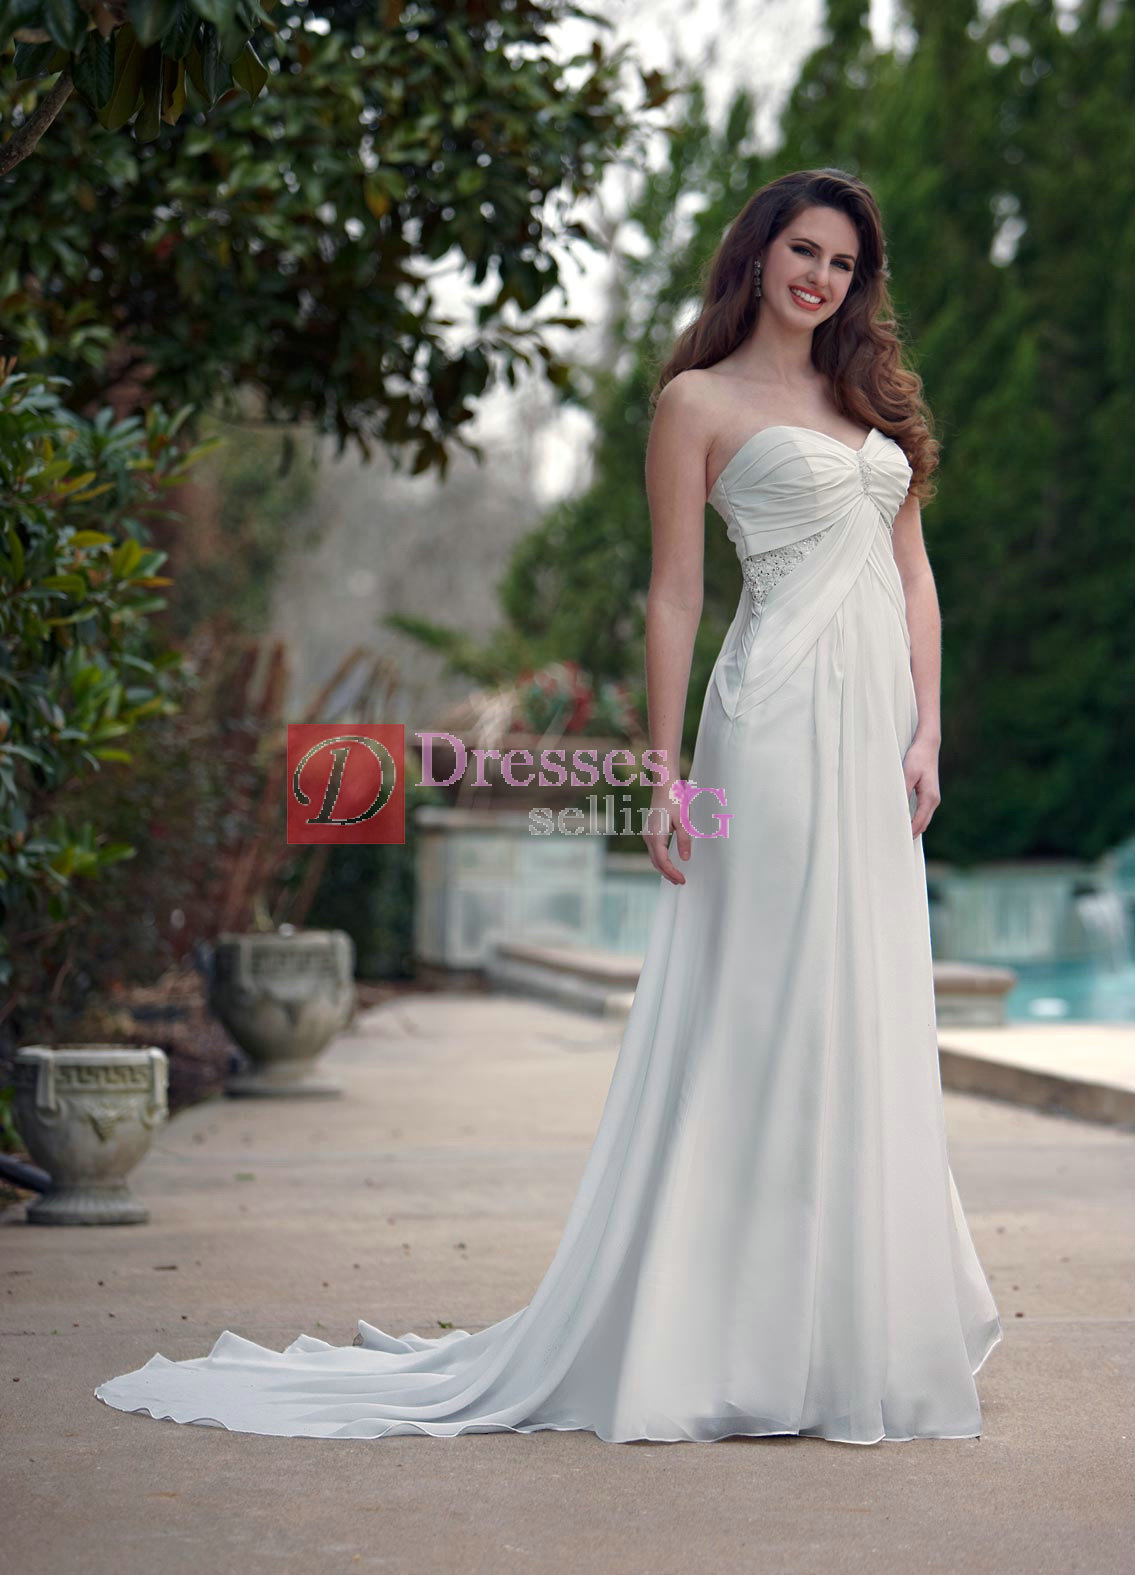 Find great deals on eBay for Maternity Wedding Dress in Wedding Dresses. Shop with confidence.